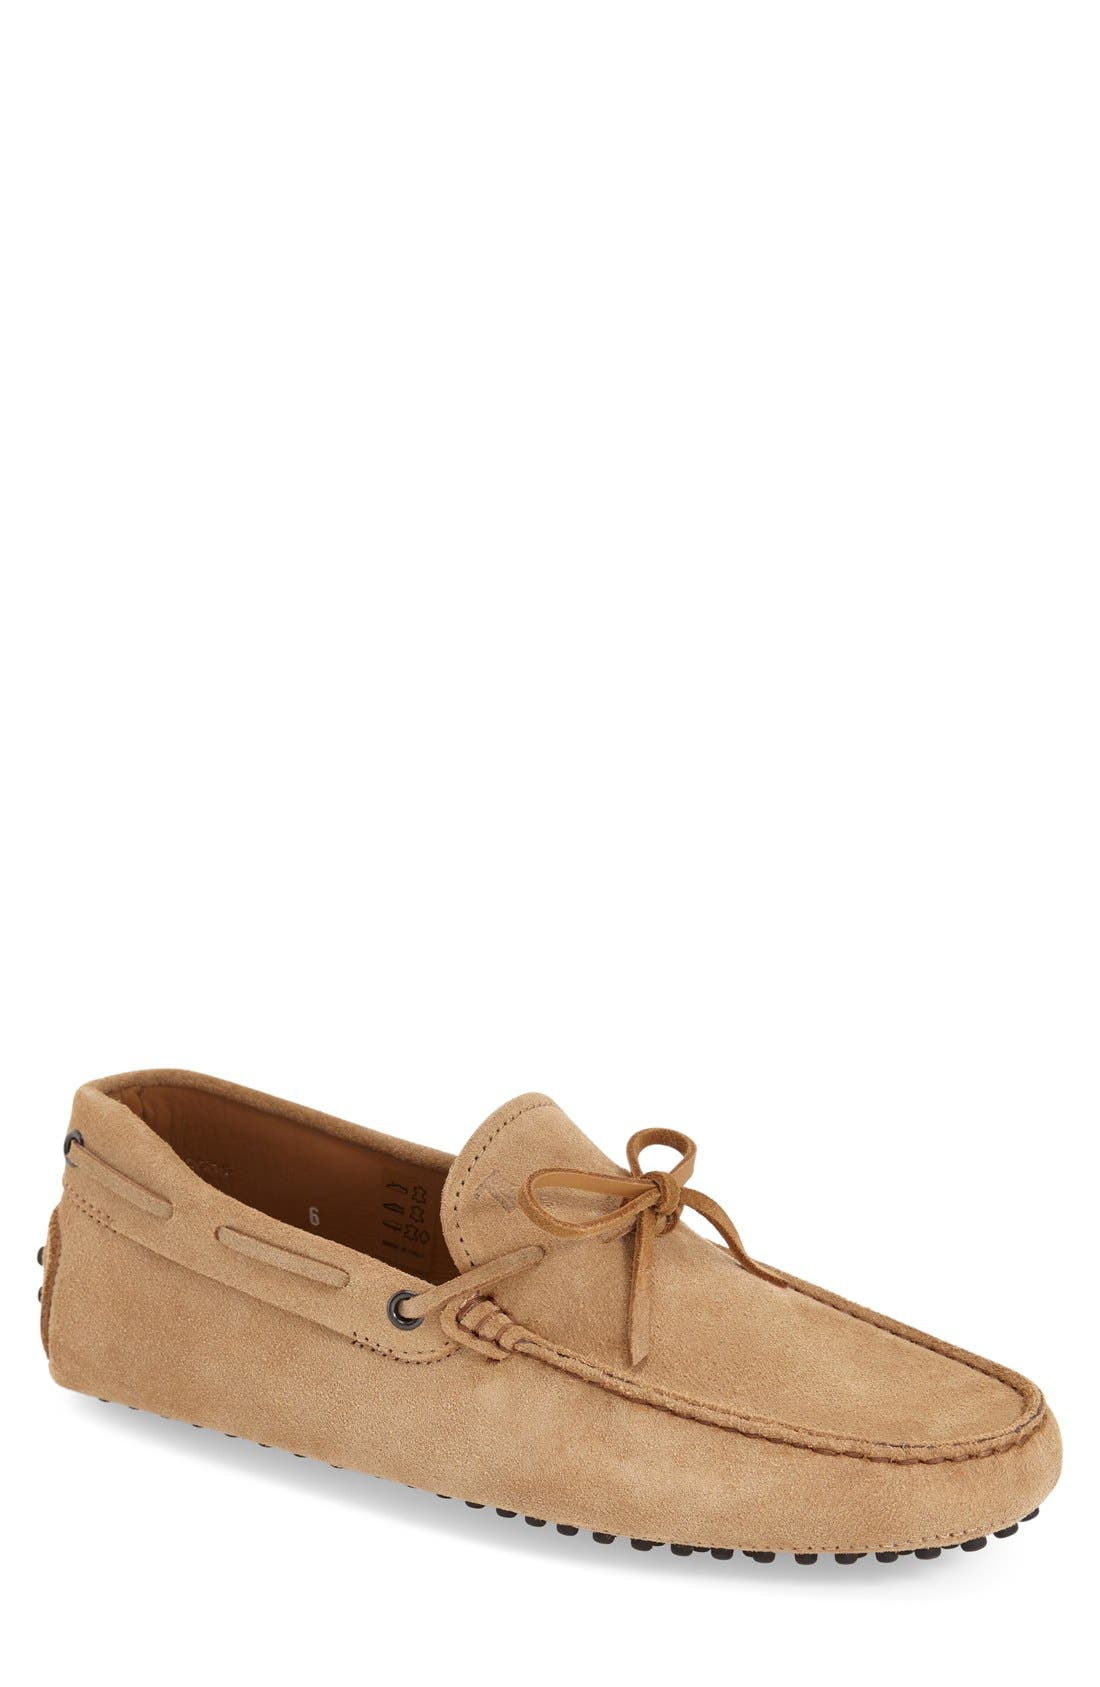 Gommini Tie Front Driving Moccasin,                             Main thumbnail 7, color,